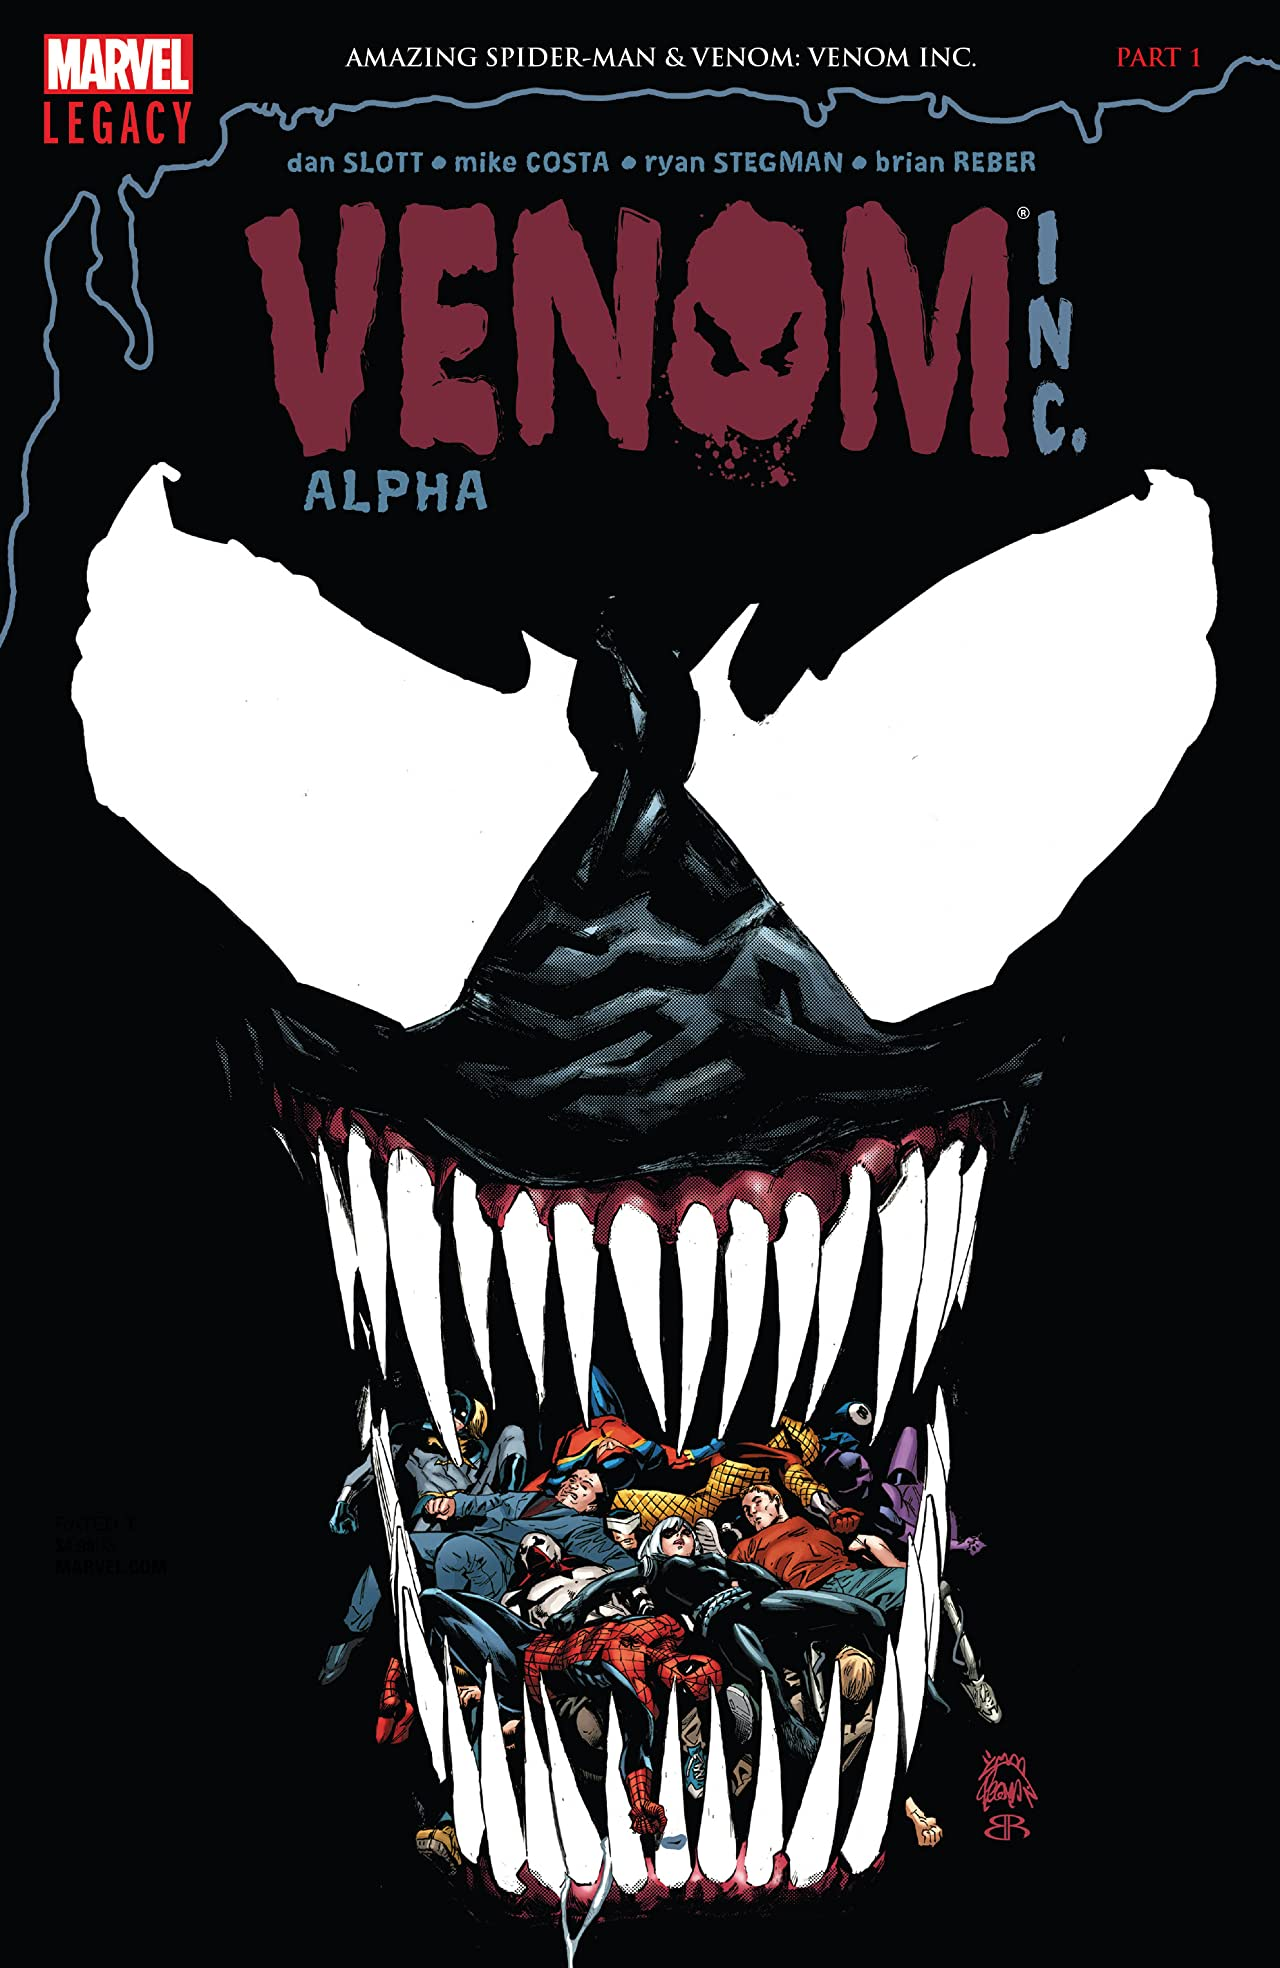 Amazing Spider-Man: Venom Inc. Alpha (2017) #1